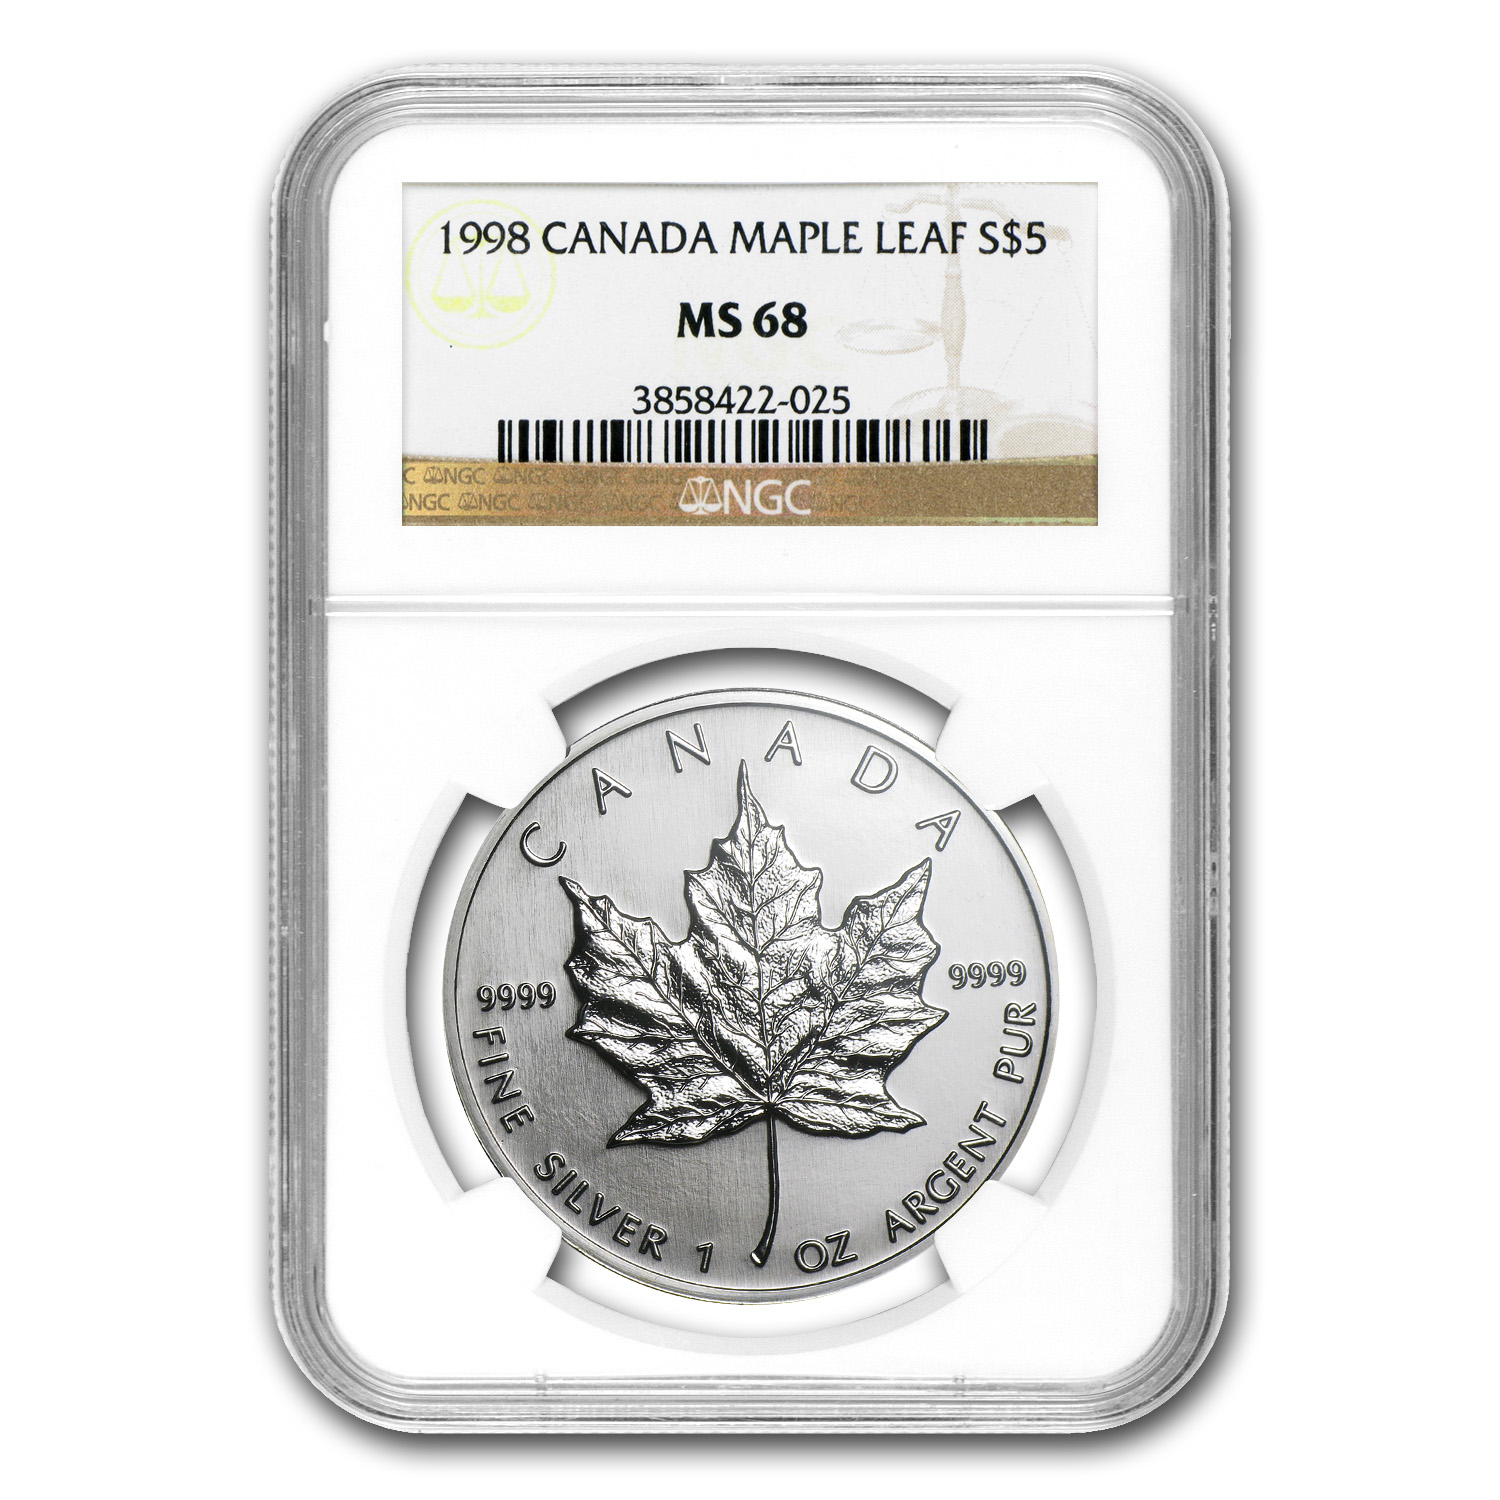 1998 Canada 1 oz Silver Maple Leaf MS-68 NGC